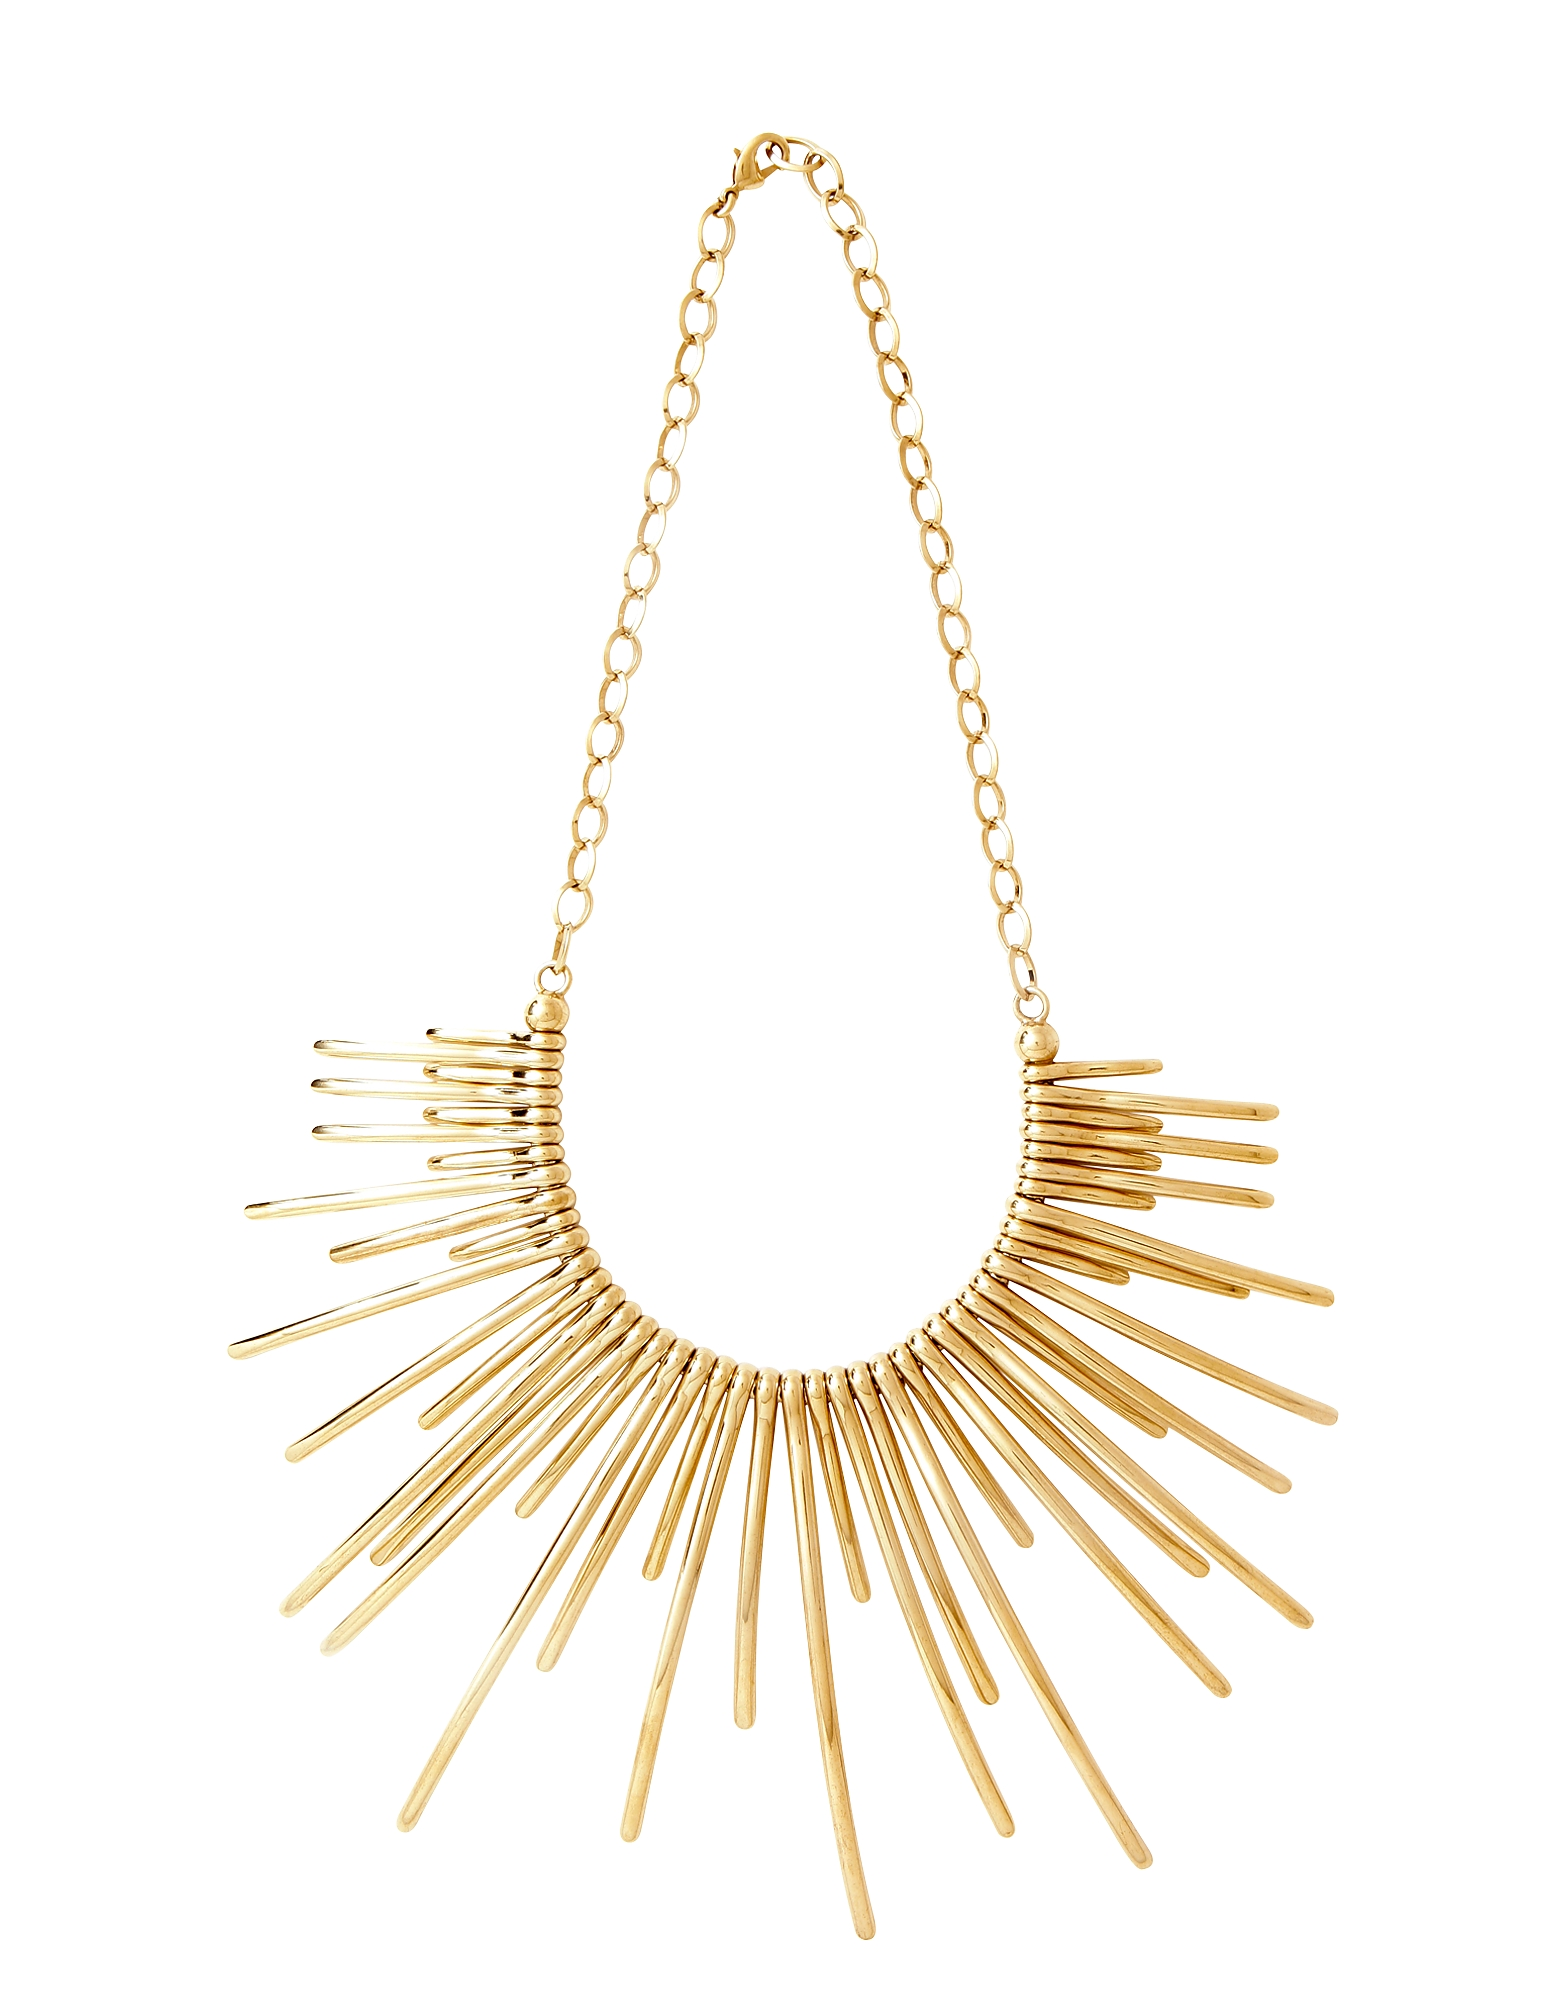 Pluma Necklaces, Sunburst Golden Brass Necklace